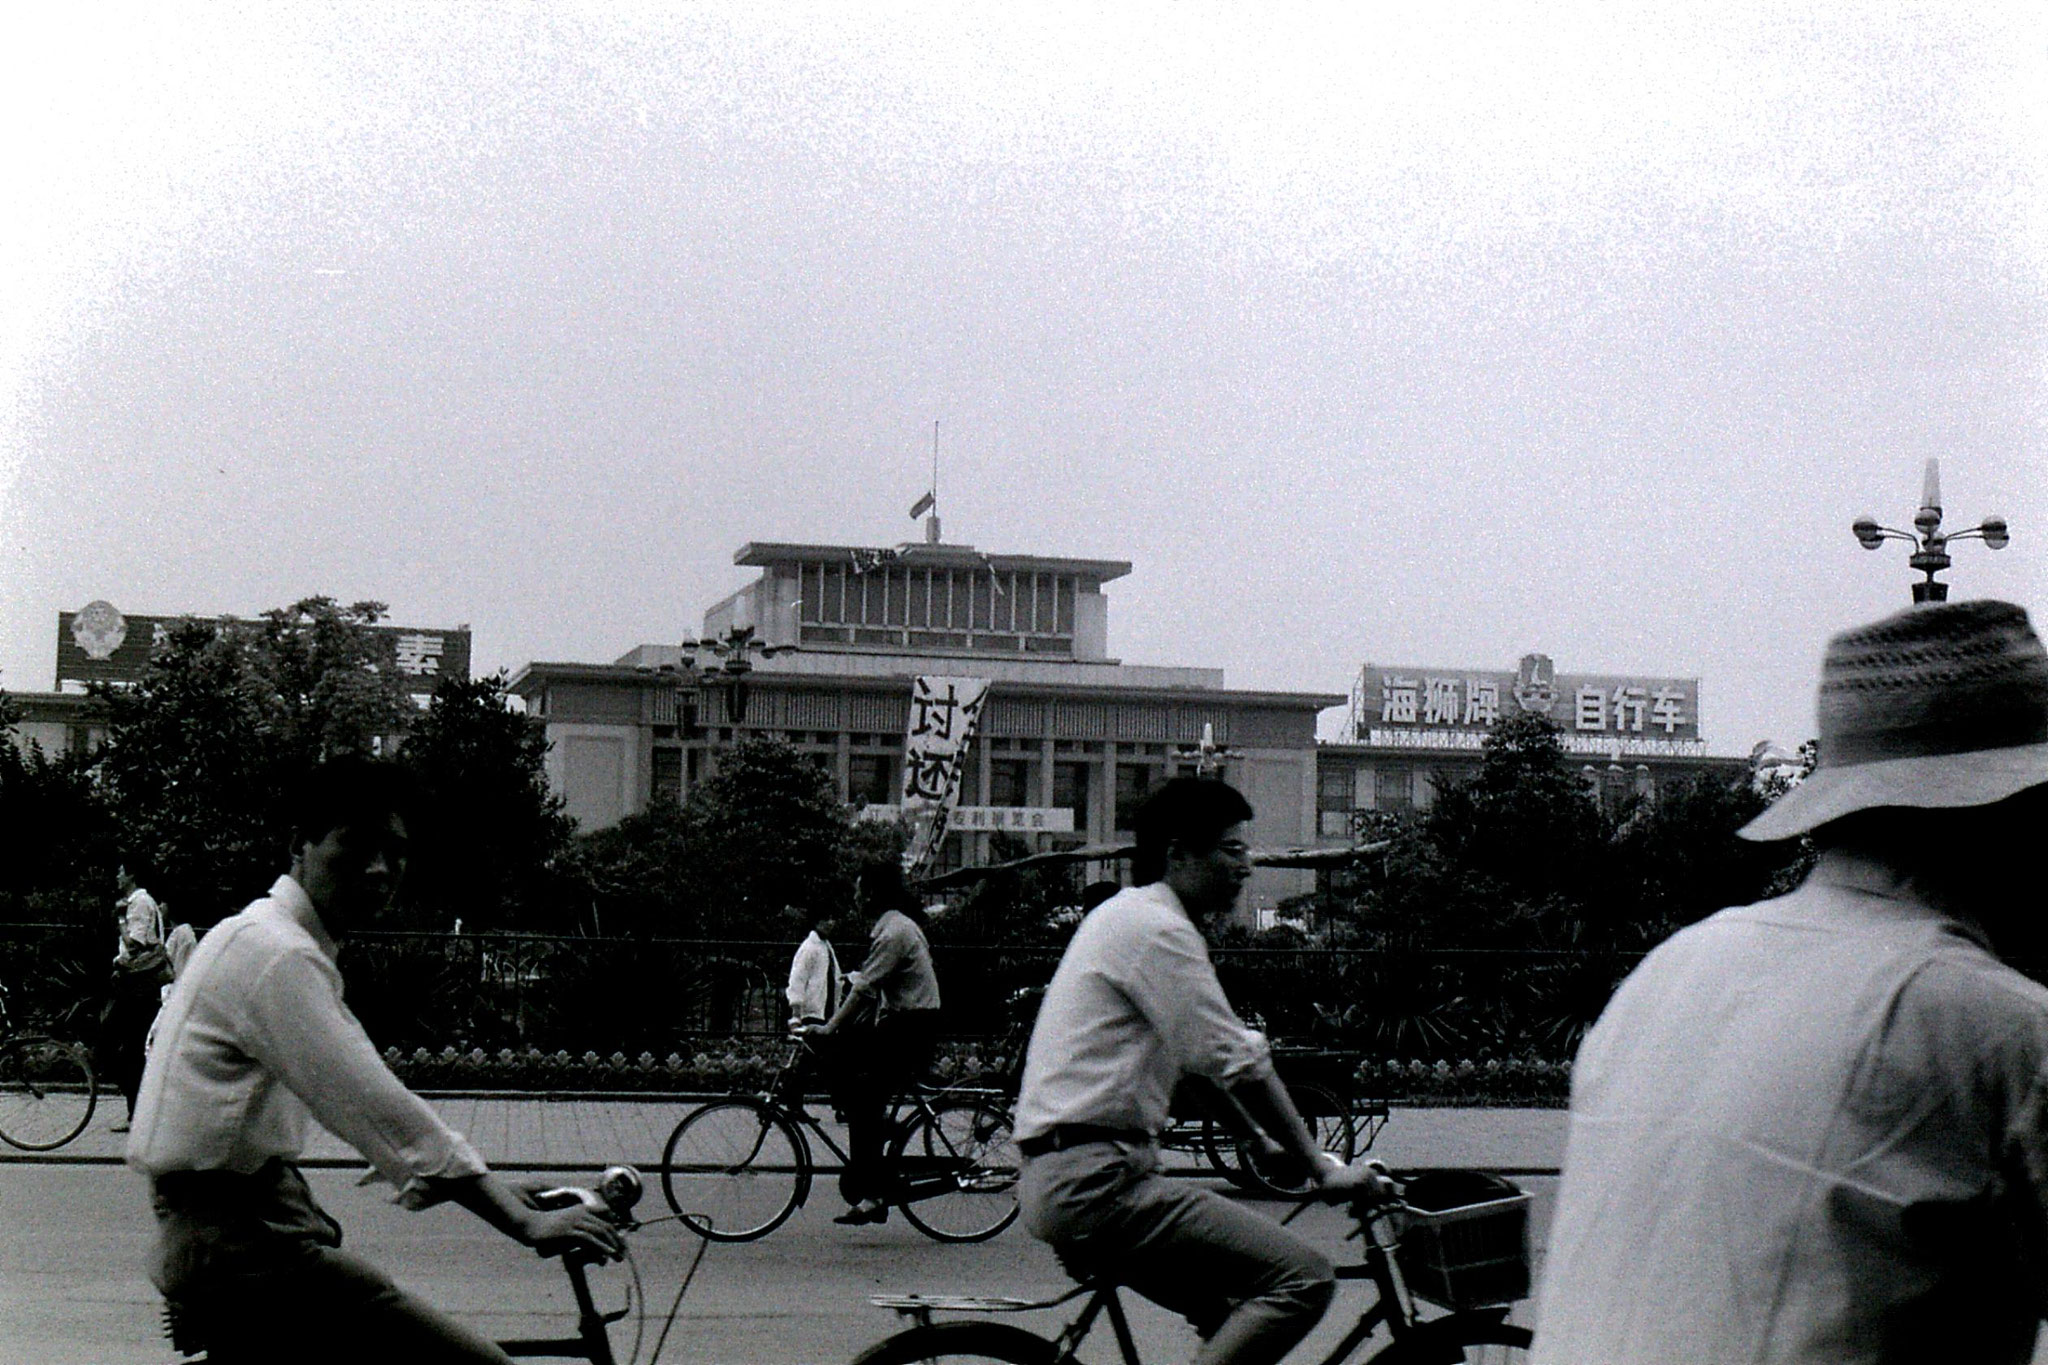 6/6/1989: 27: demonstrations around Hangzhou